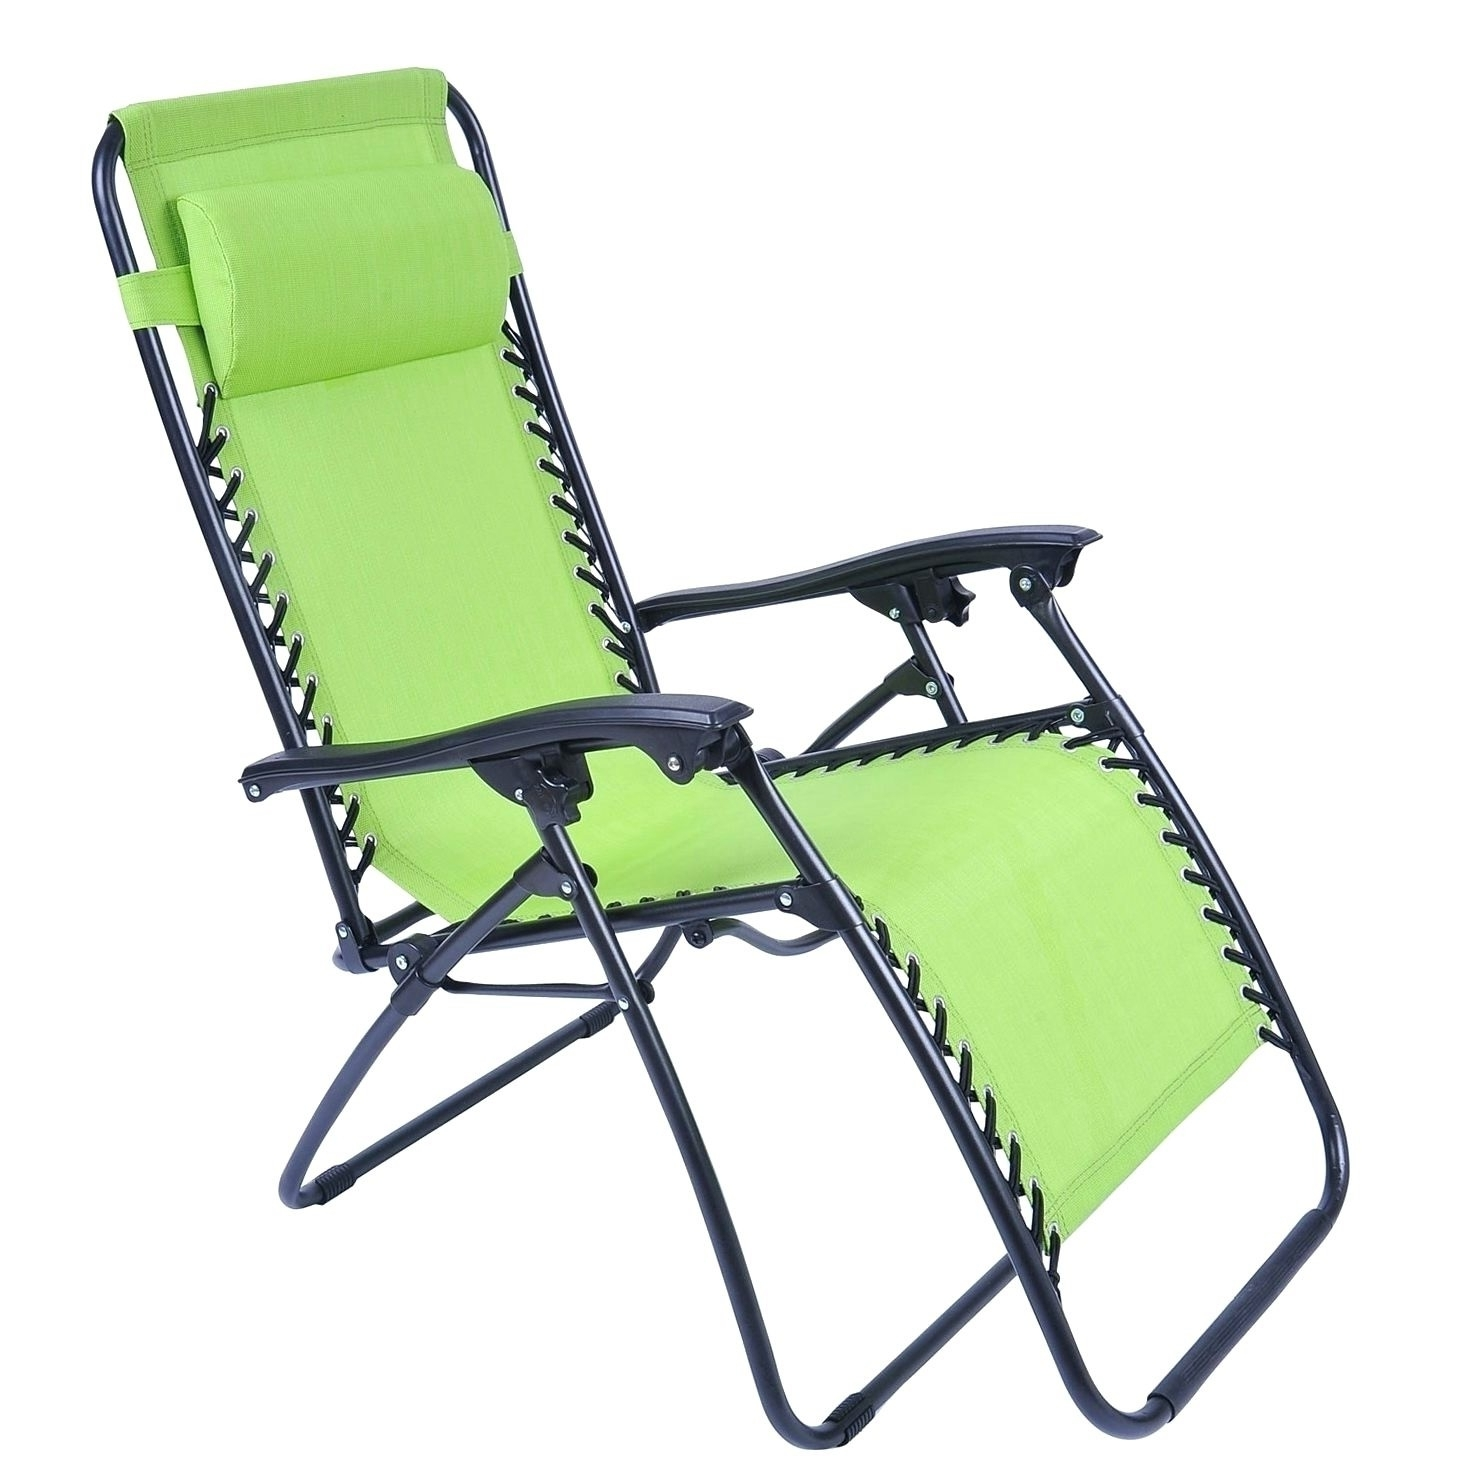 Fashionable Target Outdoor Chaise Lounges Intended For Outdoor : Lounge Chair Outdoor Folding Best Indoor Chaise Lounge (View 11 of 15)